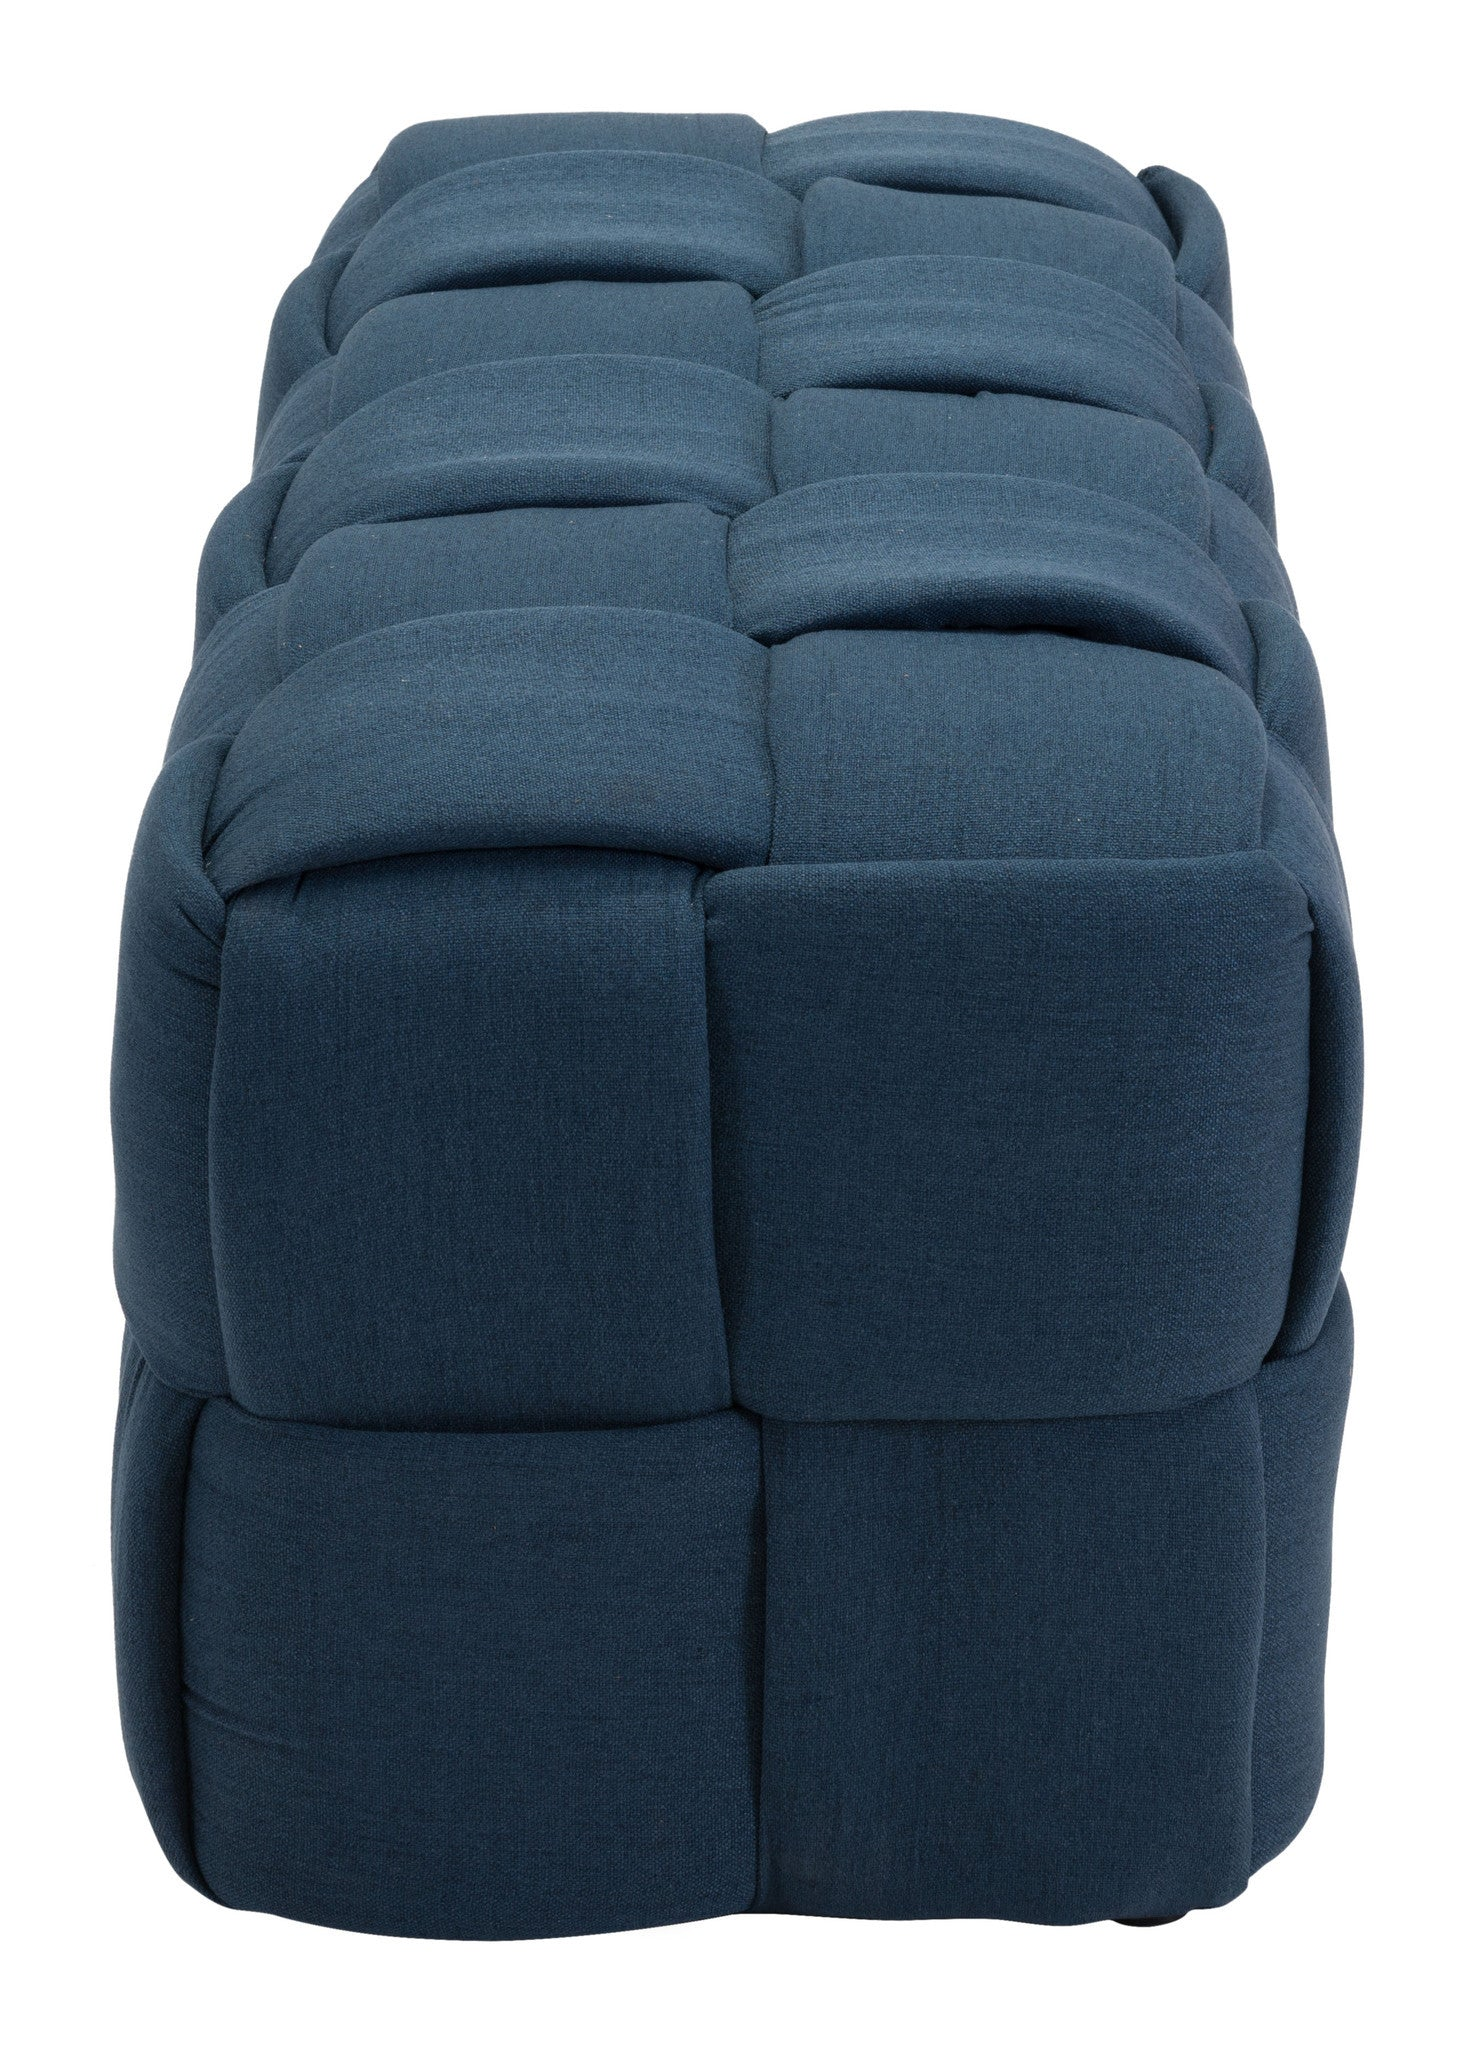 w in to chic velvet legs bench hover dr home on zoom x neil tufted navy